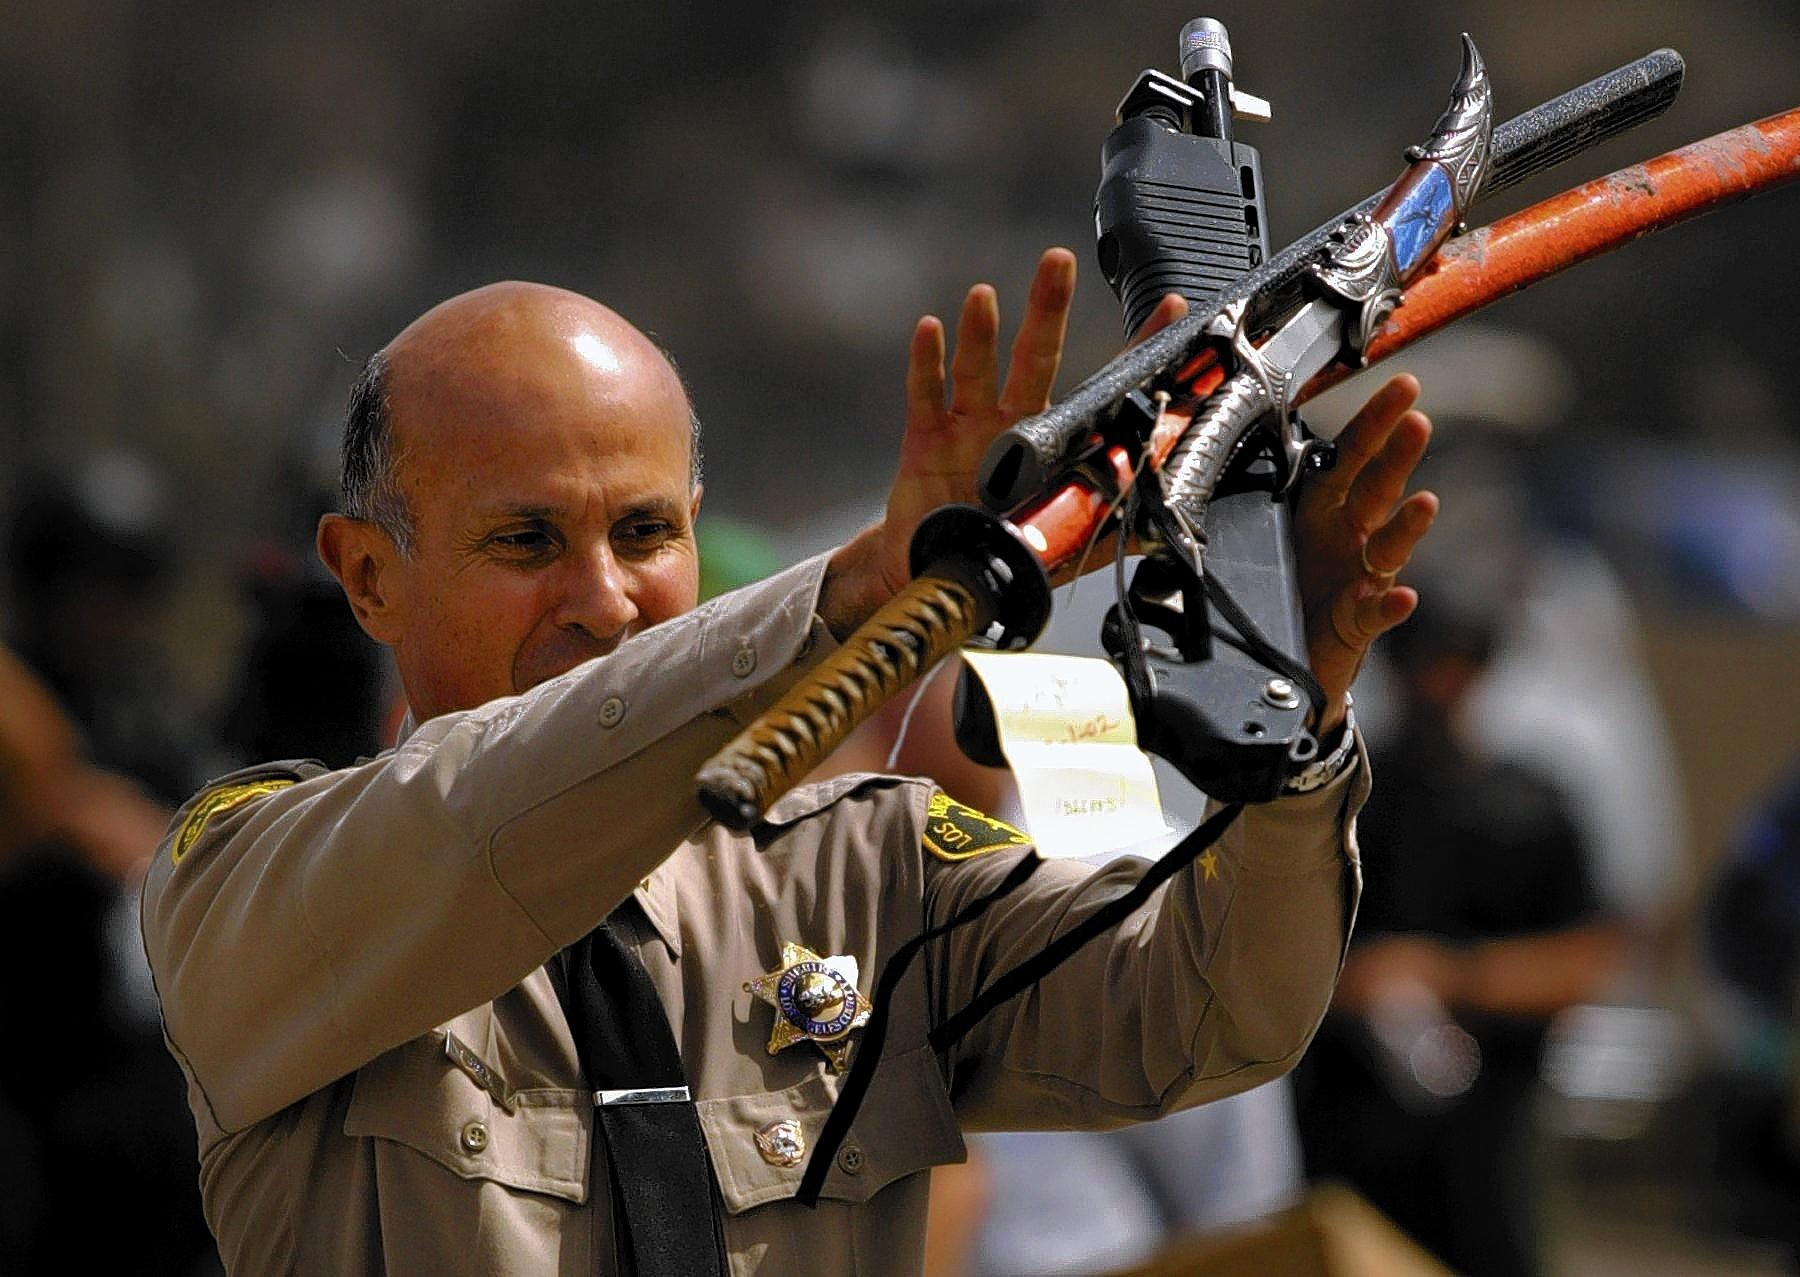 Sheriff Lee Baca consulted with key aides before deciding to retire after 48 years with the L.A. County Sheriff's Department.